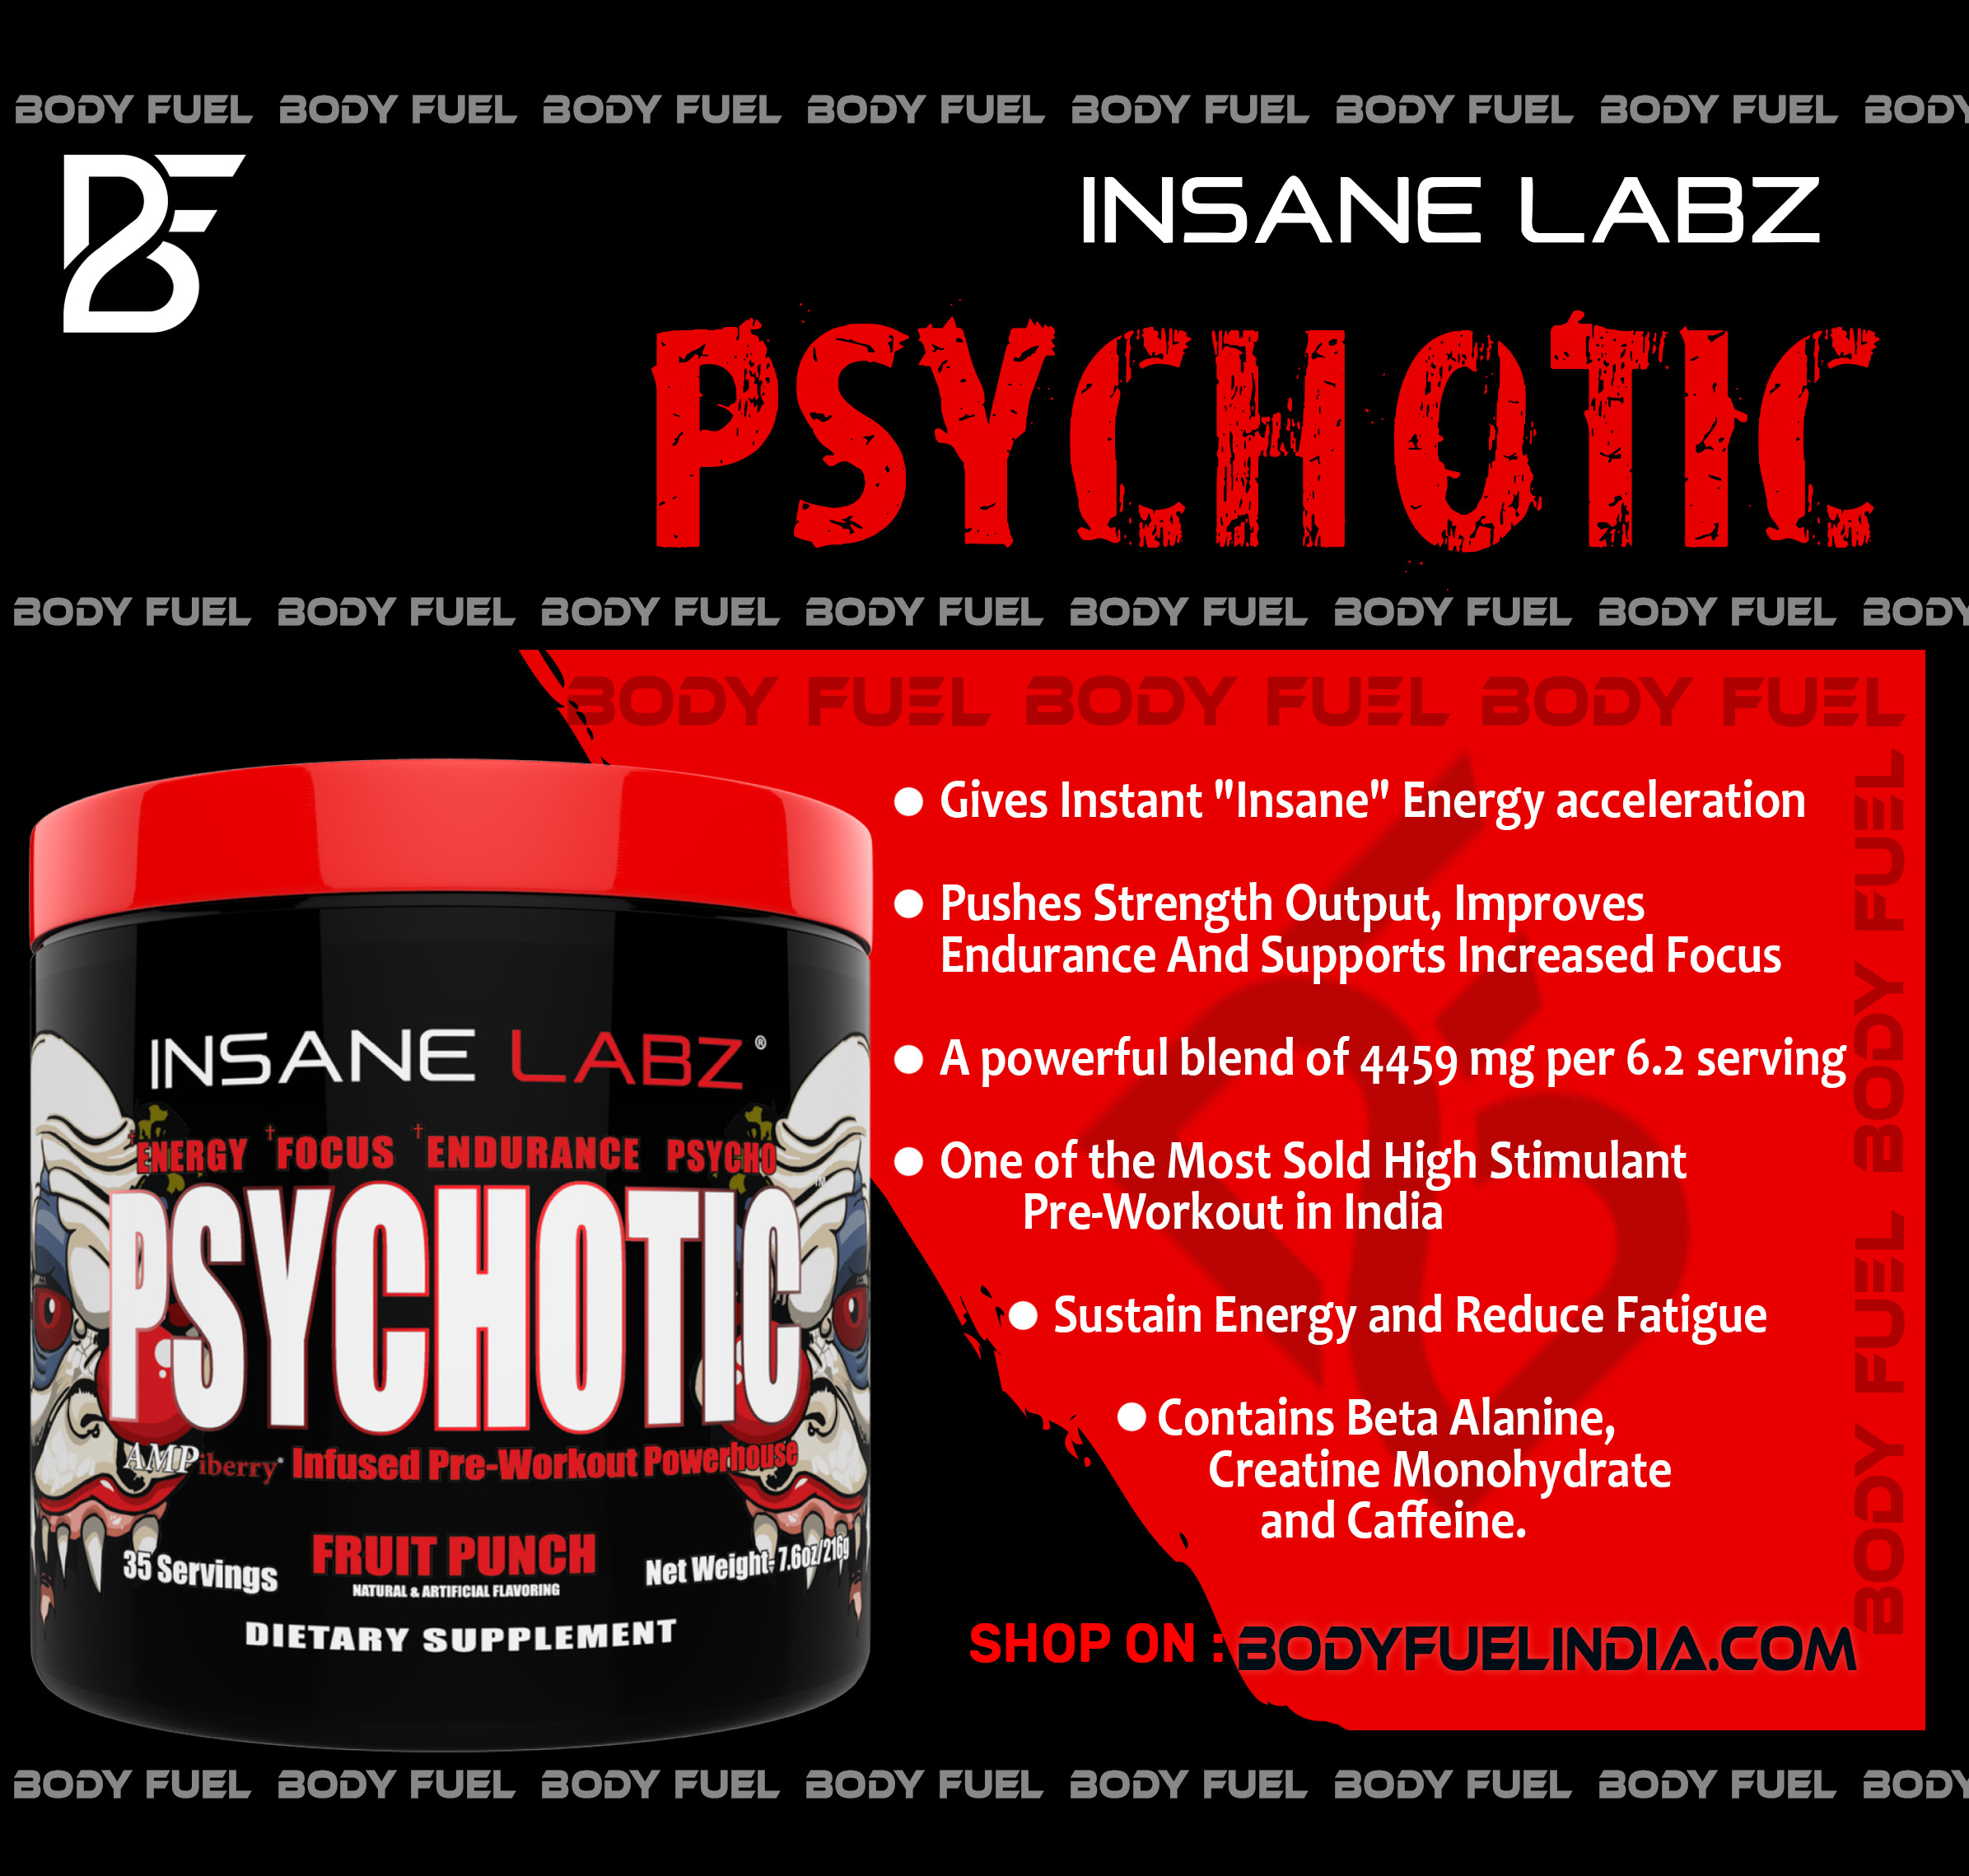 Insane Labz Psychotic, Ergogenics, Body Fuel India's no.1 Authentic Online Supplement Store